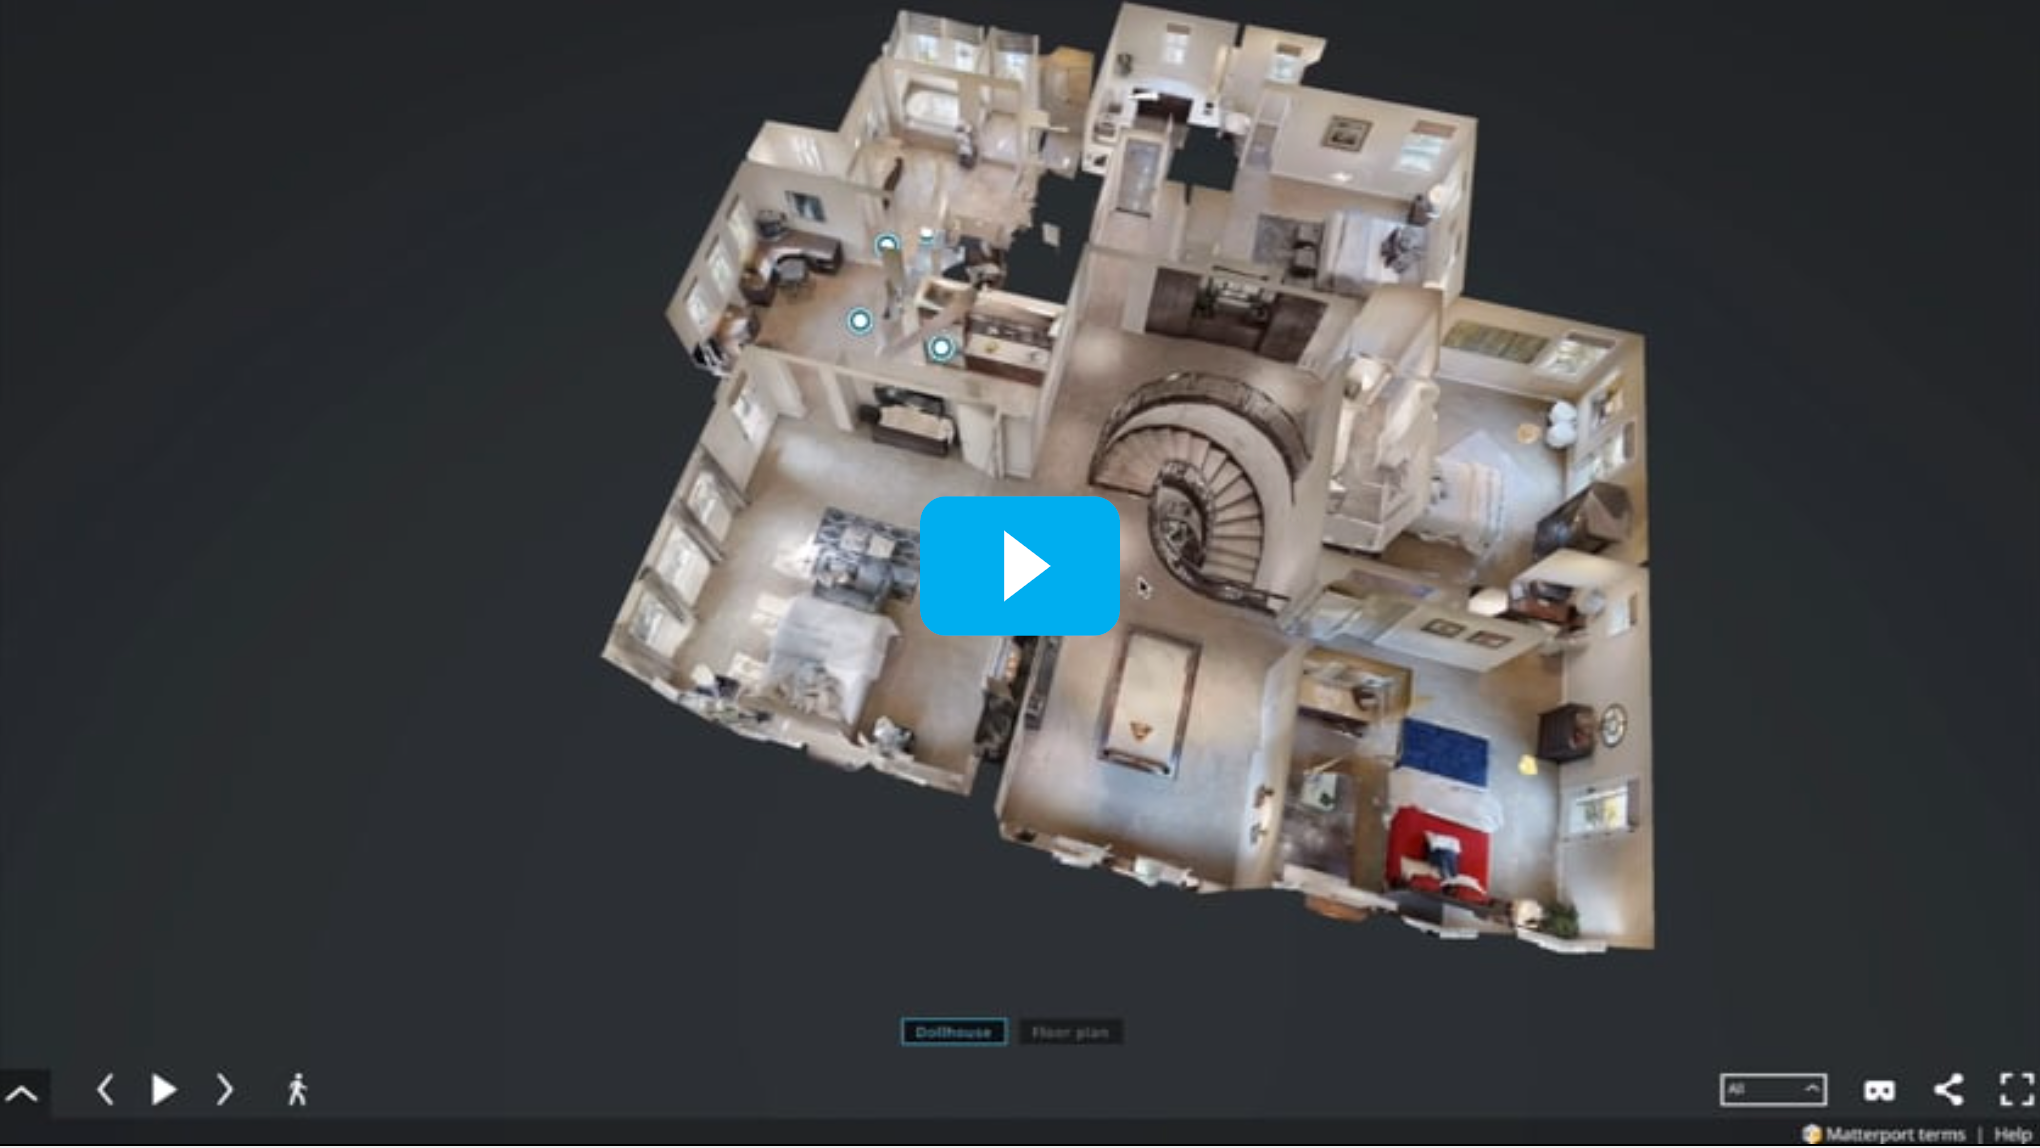 Dollhouse view of 3D Matterport tour with blue play button over house image on black background